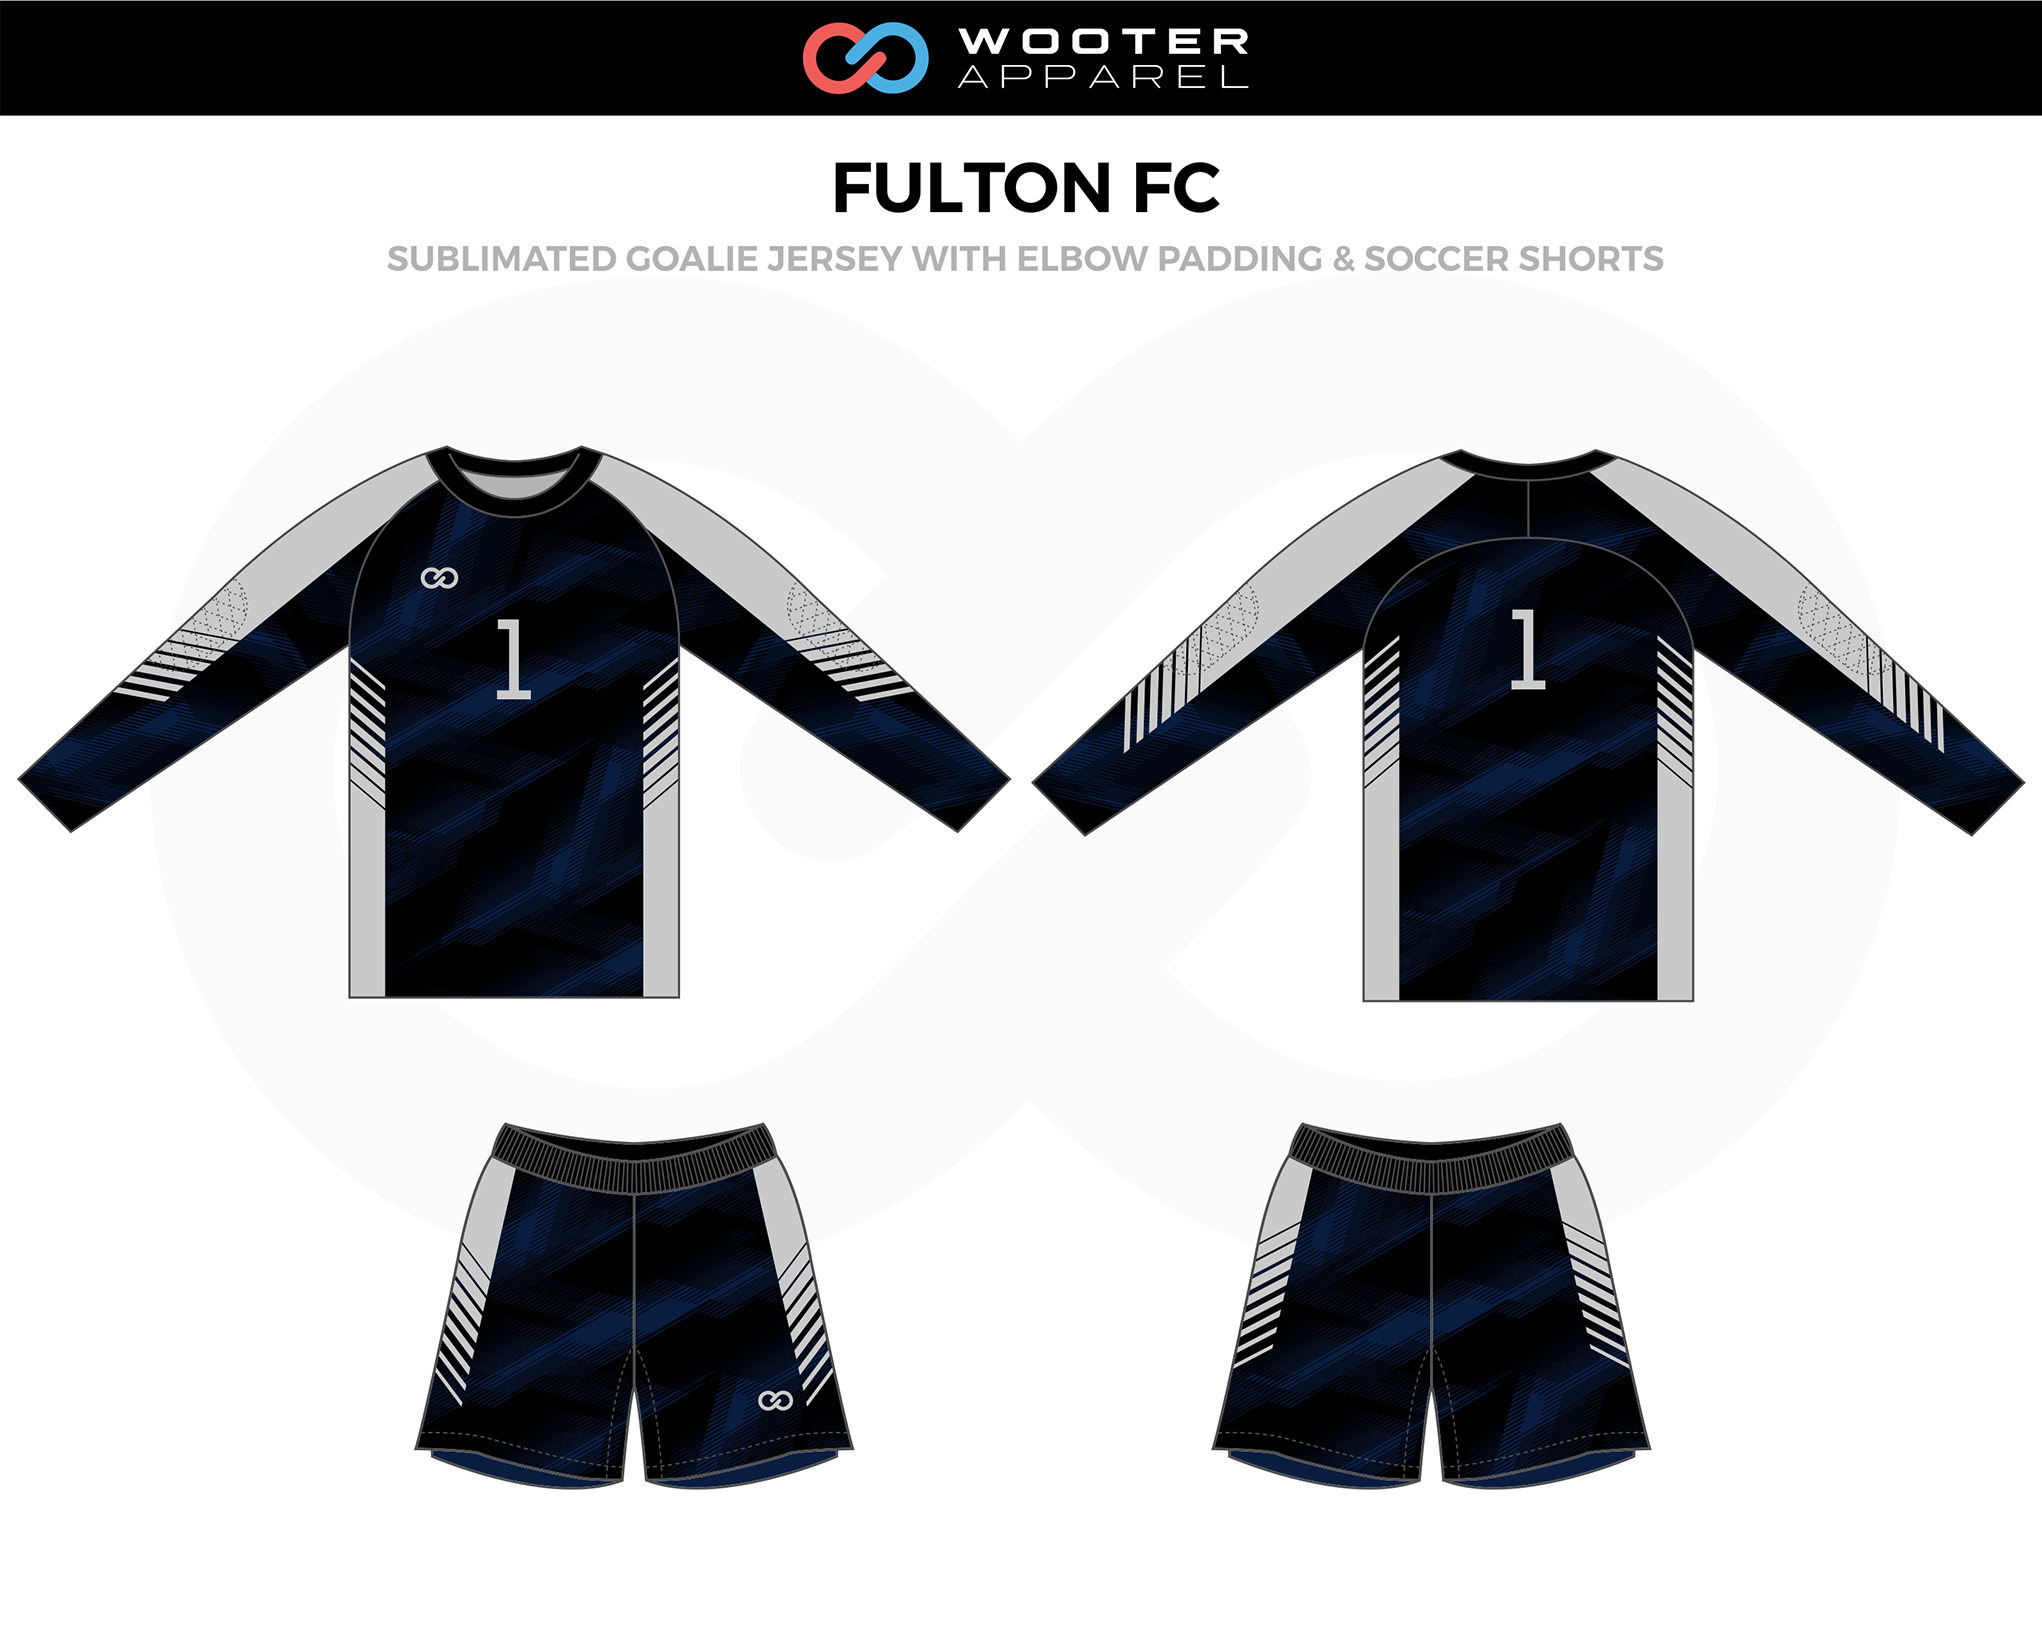 FULTON FC Gray Black Soccer Uniform, Goalie Jerseys with Elbow Padding, and Shorts